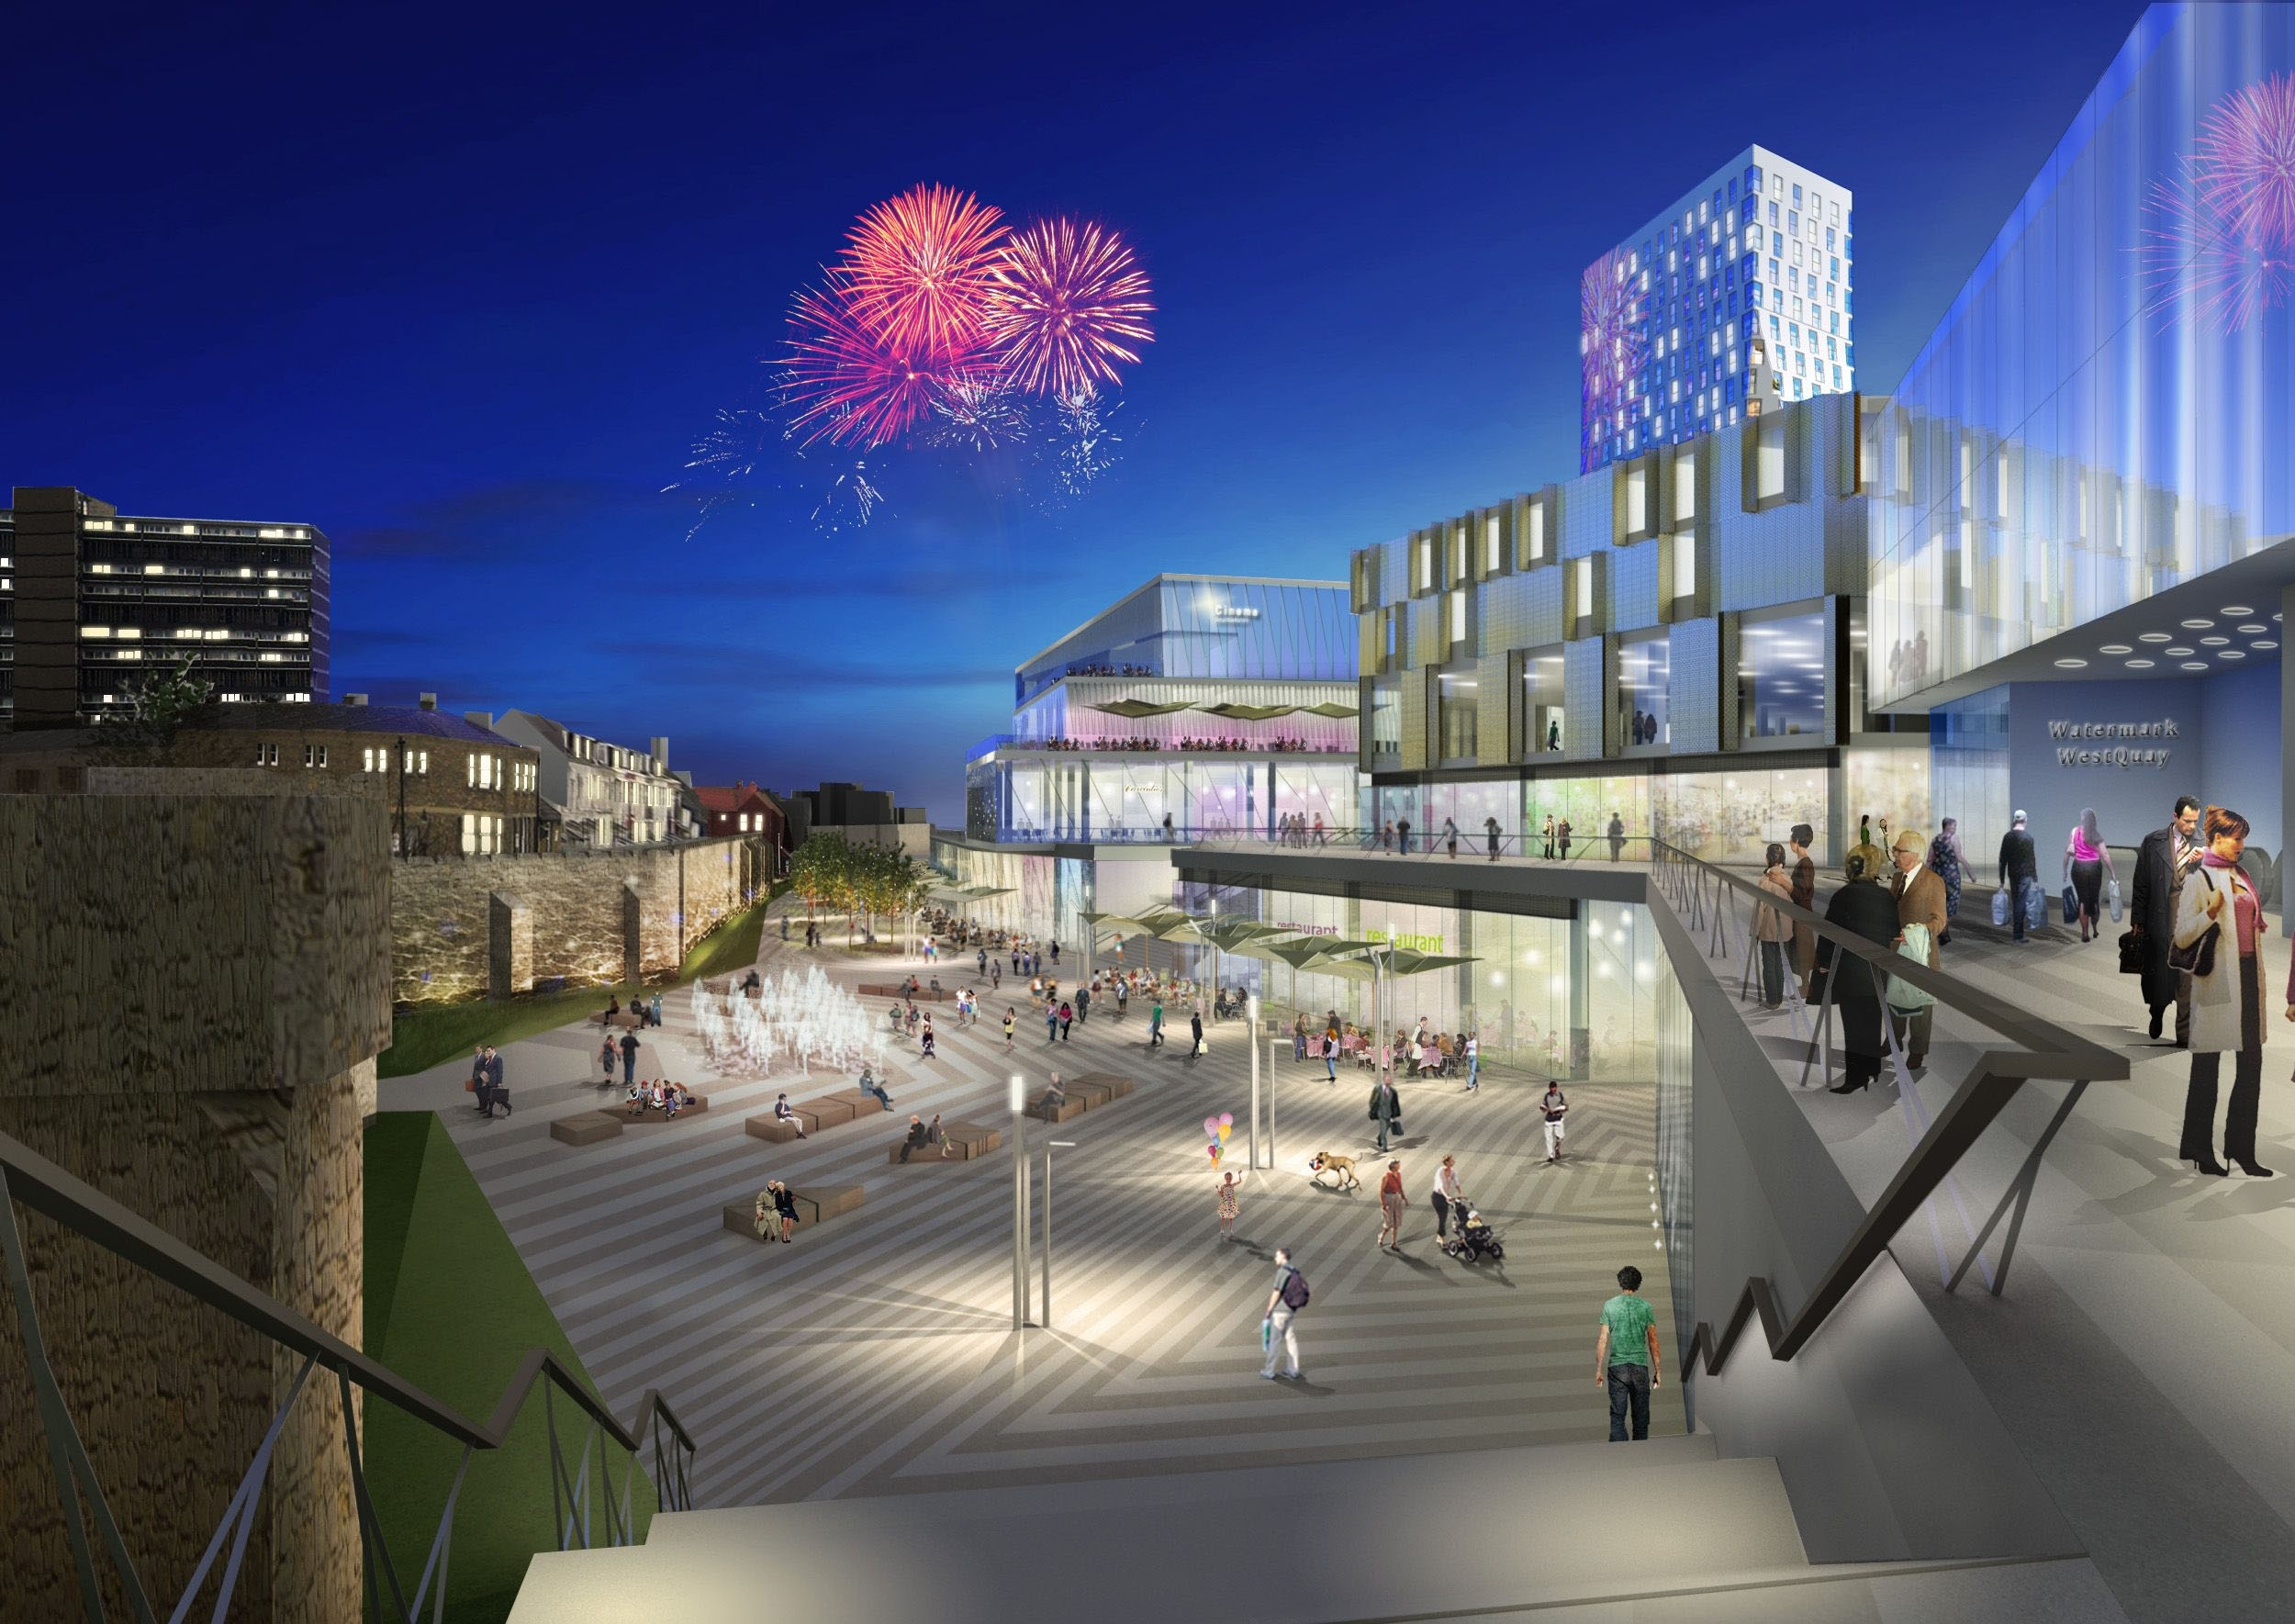 An earlier artist's impression of Watermark WestQuay